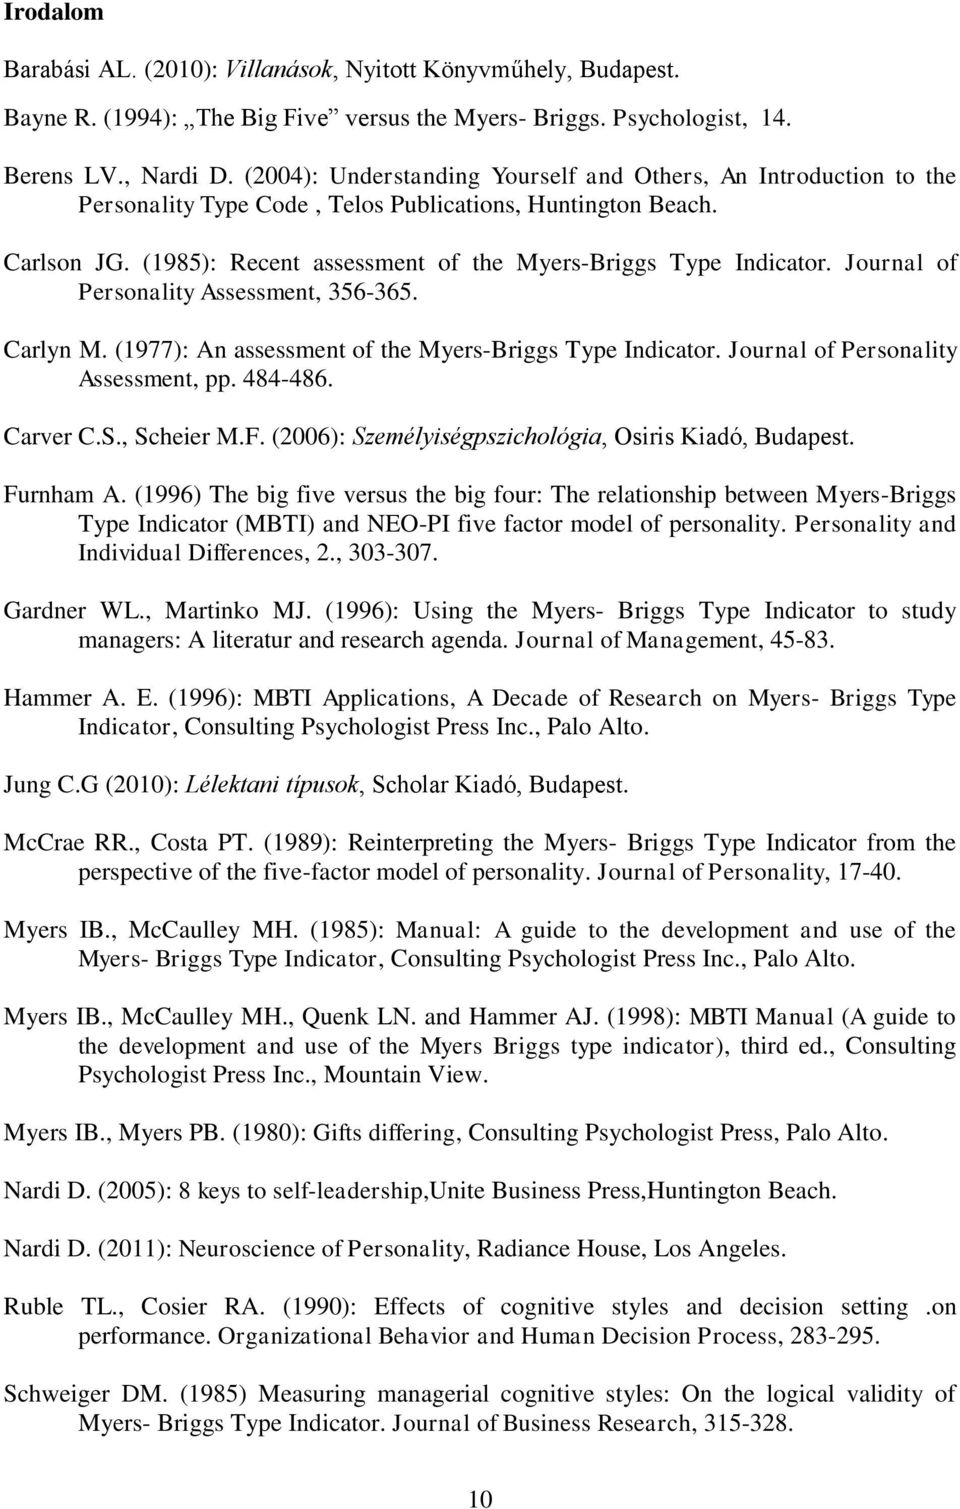 Journal of Personality Assessment, 356-365. Carlyn M. (1977): An assessment of the Myers-Briggs Type Indicator. Journal of Personality Assessment, pp. 484-486. Carver C.S., Scheier M.F.